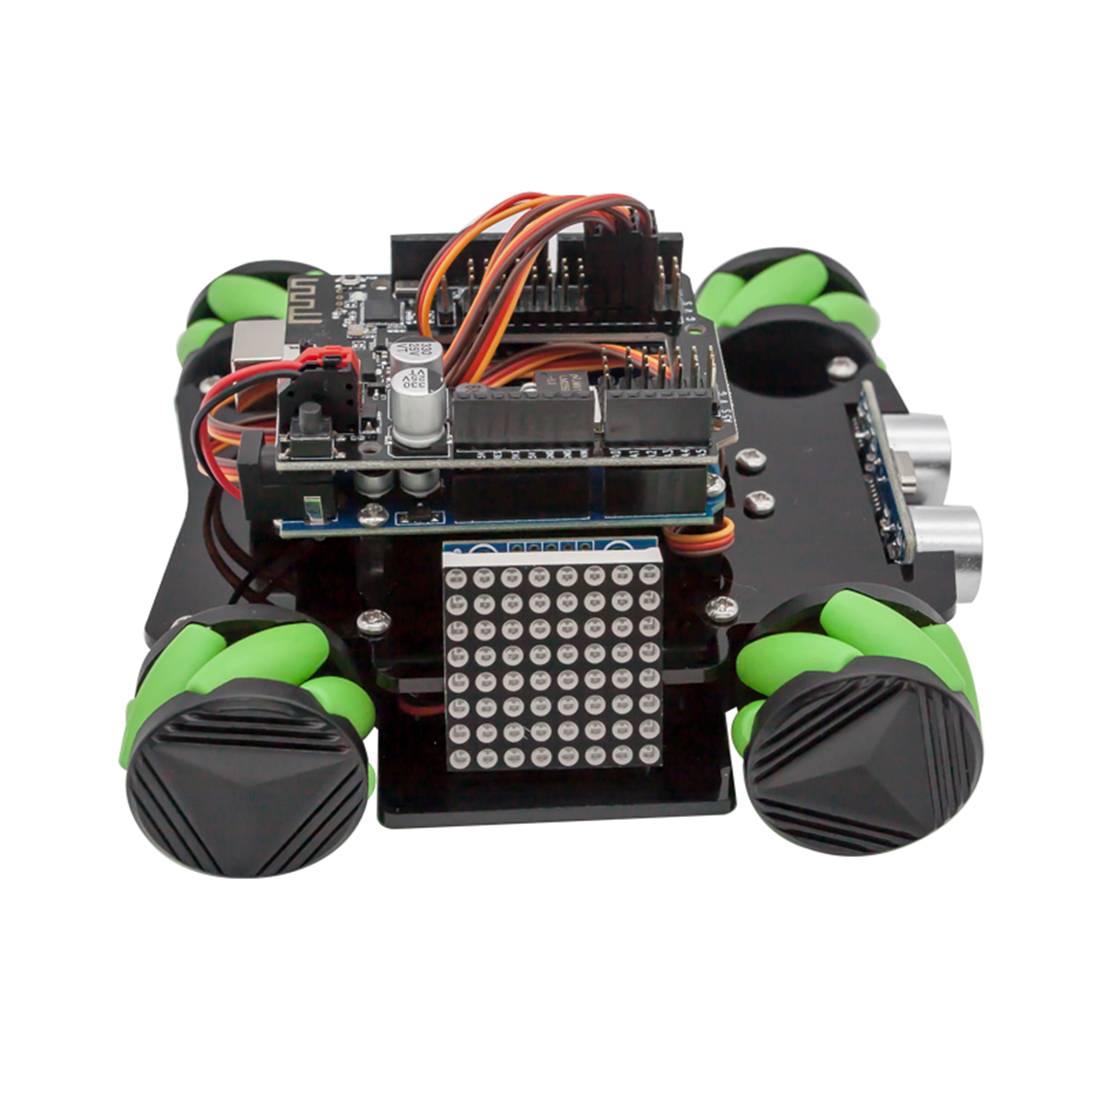 DIY Obstacle Avoidance Smart Programmable Robot Car Educational Learning Kit With Mecanum Wheels For Arduino  - Set D